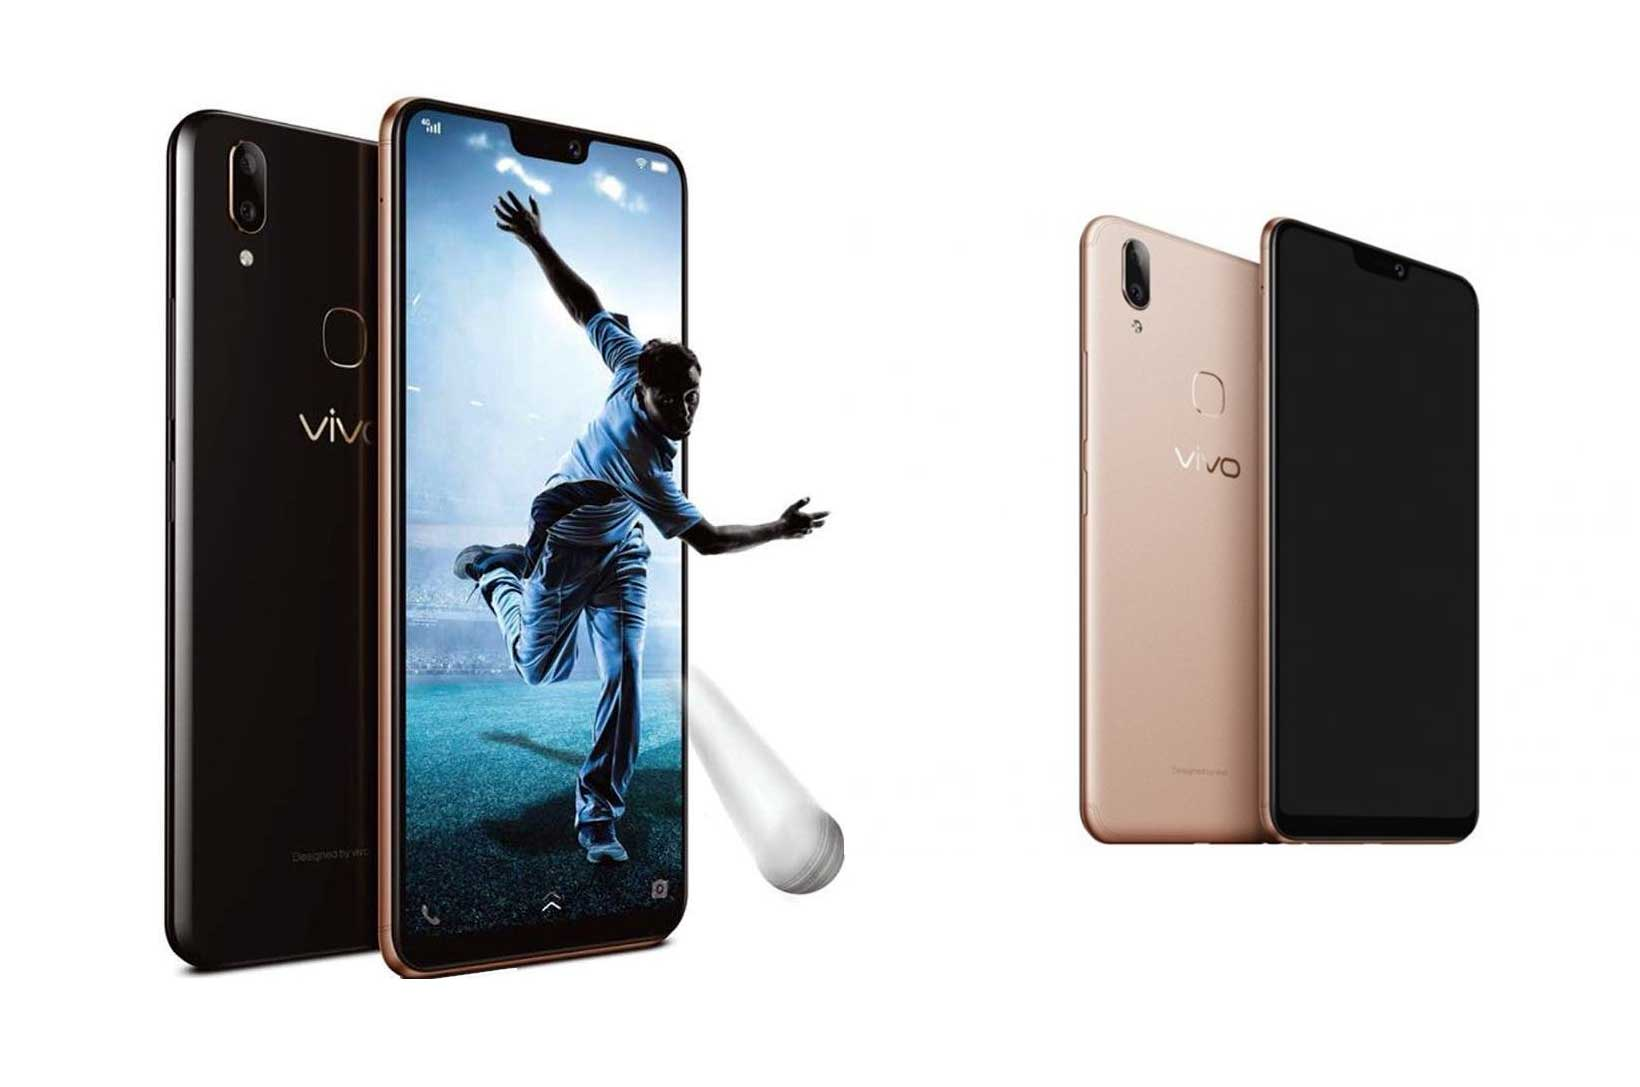 Dc5m united states it in english created at 2018 04 20 1804 vivo launches its mid range android phone vivo v9 youth it carries the same design as vivo v9 but it has a lower price tag vivo v9 youth is priced at fandeluxe Gallery